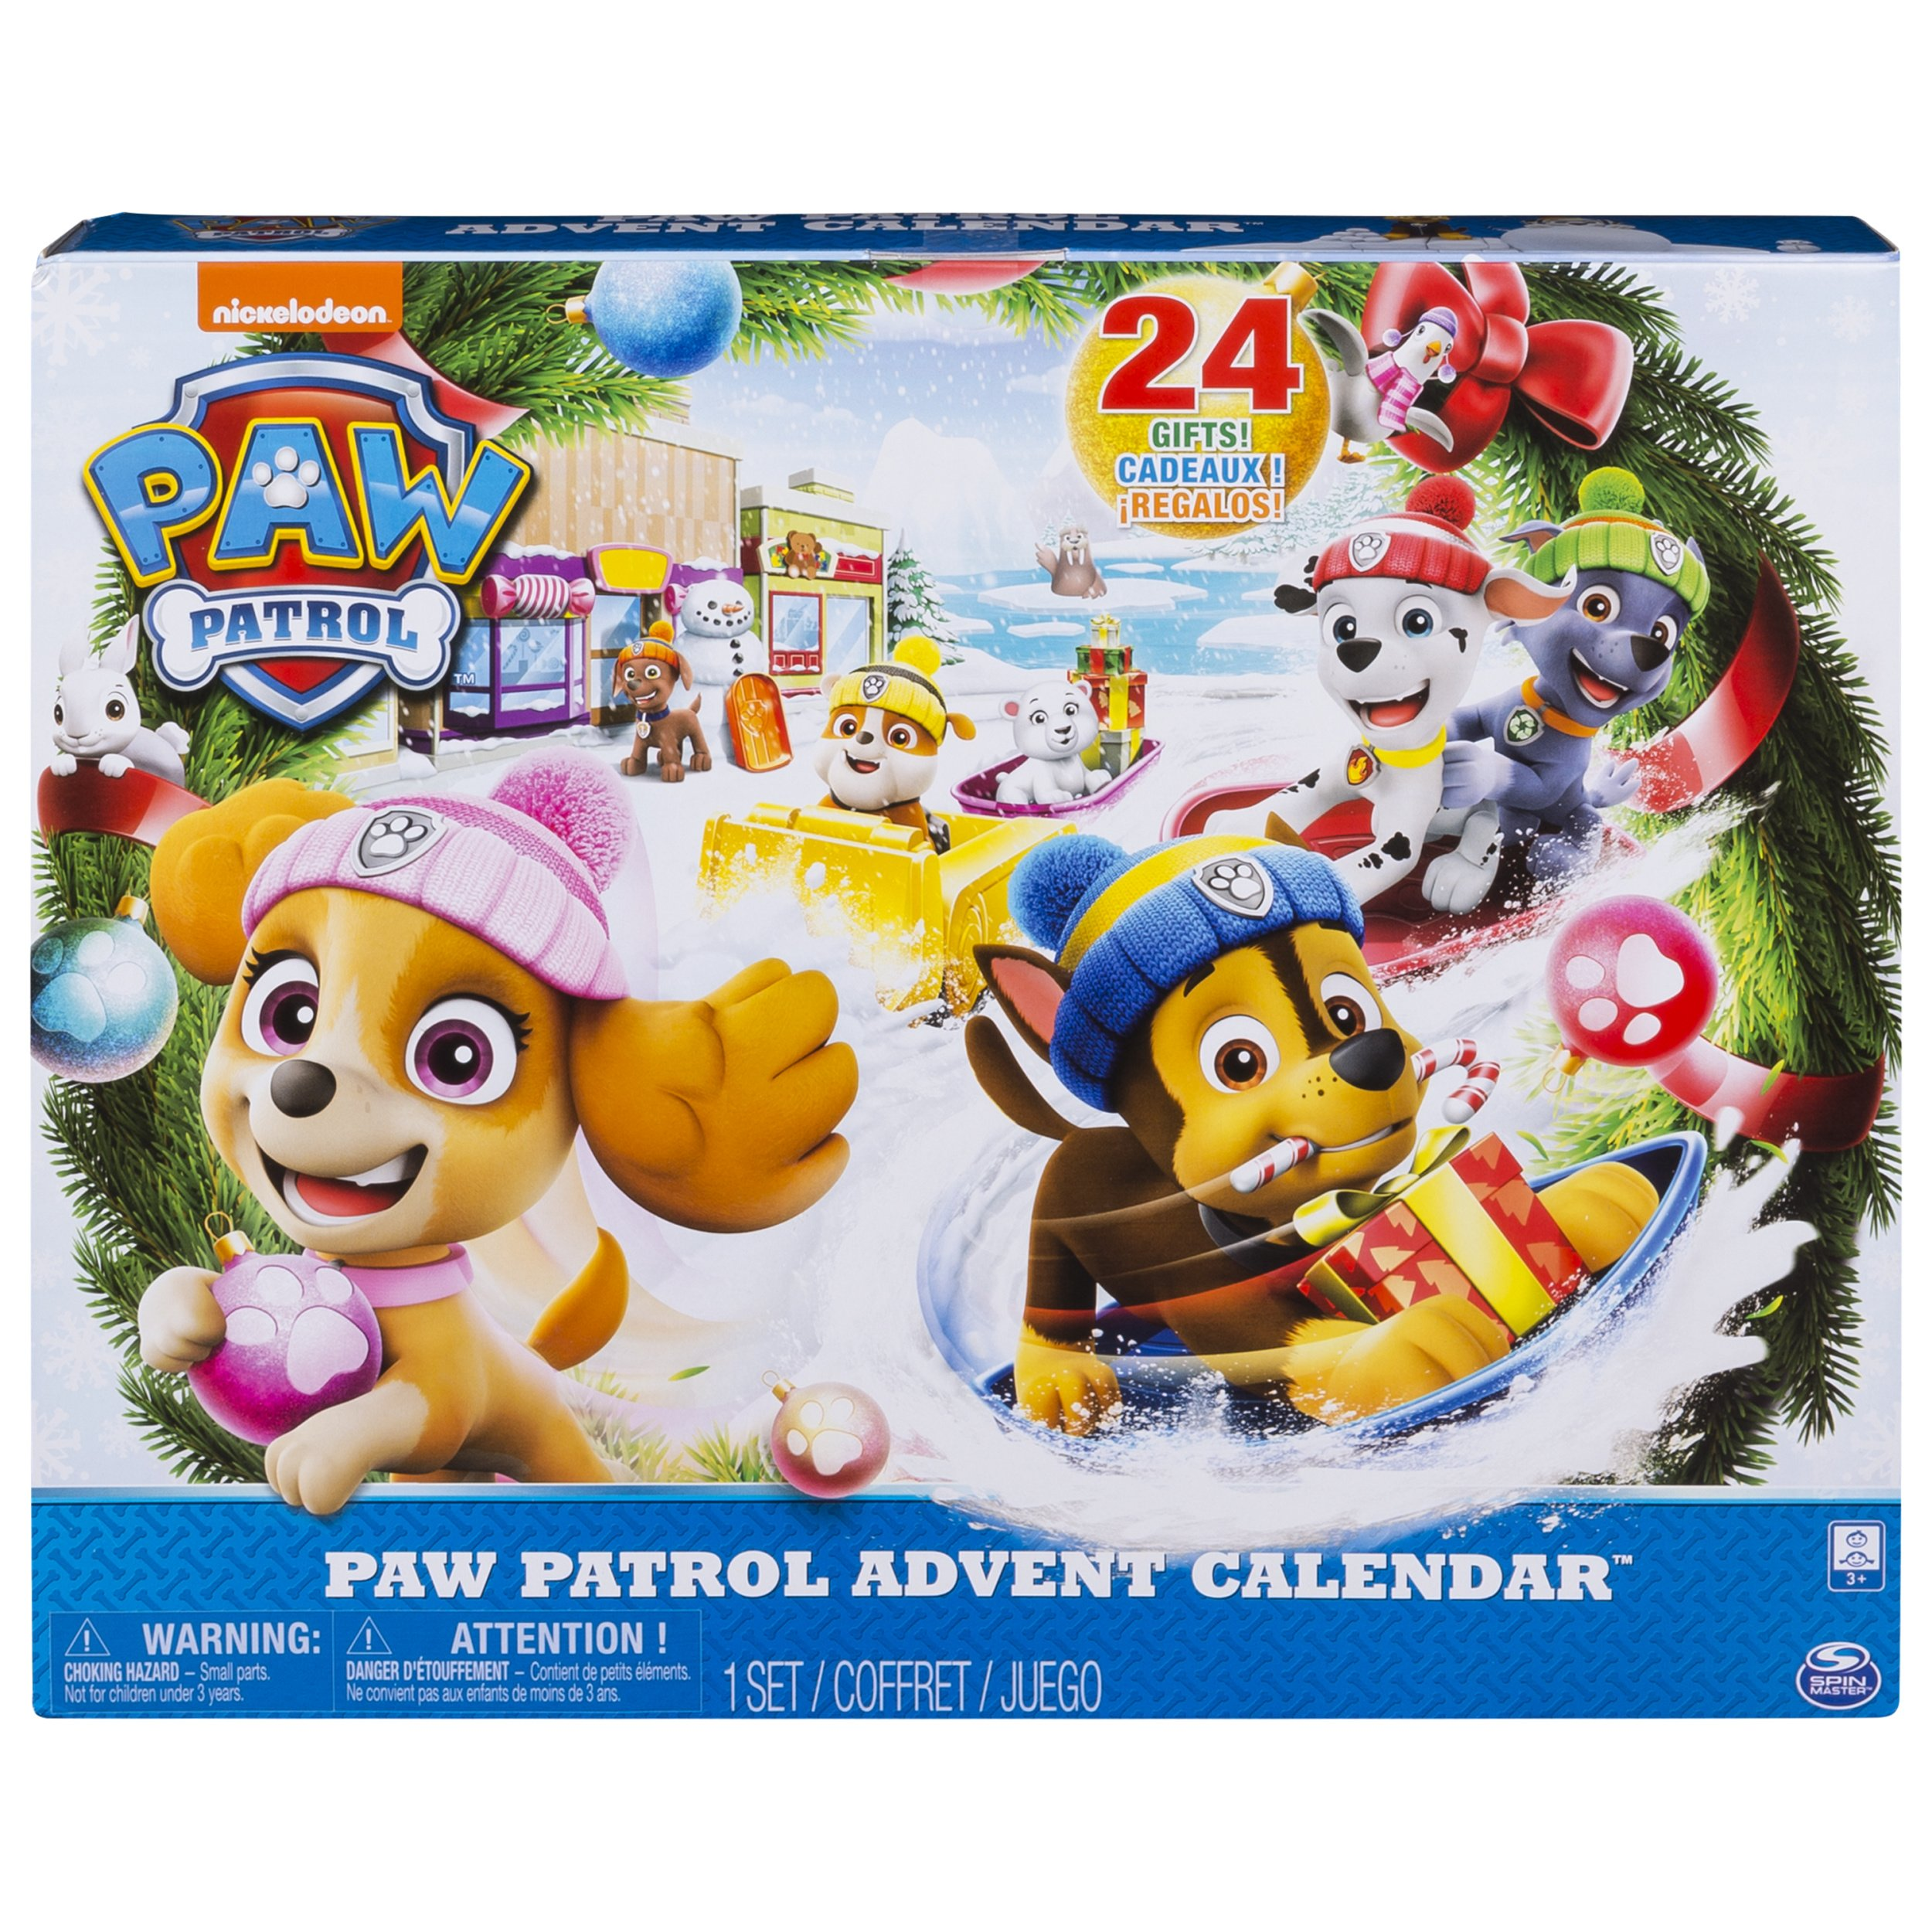 Paw Patrol - 2018 Advent Calendar Release -  Includes 24 Gifts to Explore - Ages 3+ by Paw Patrol